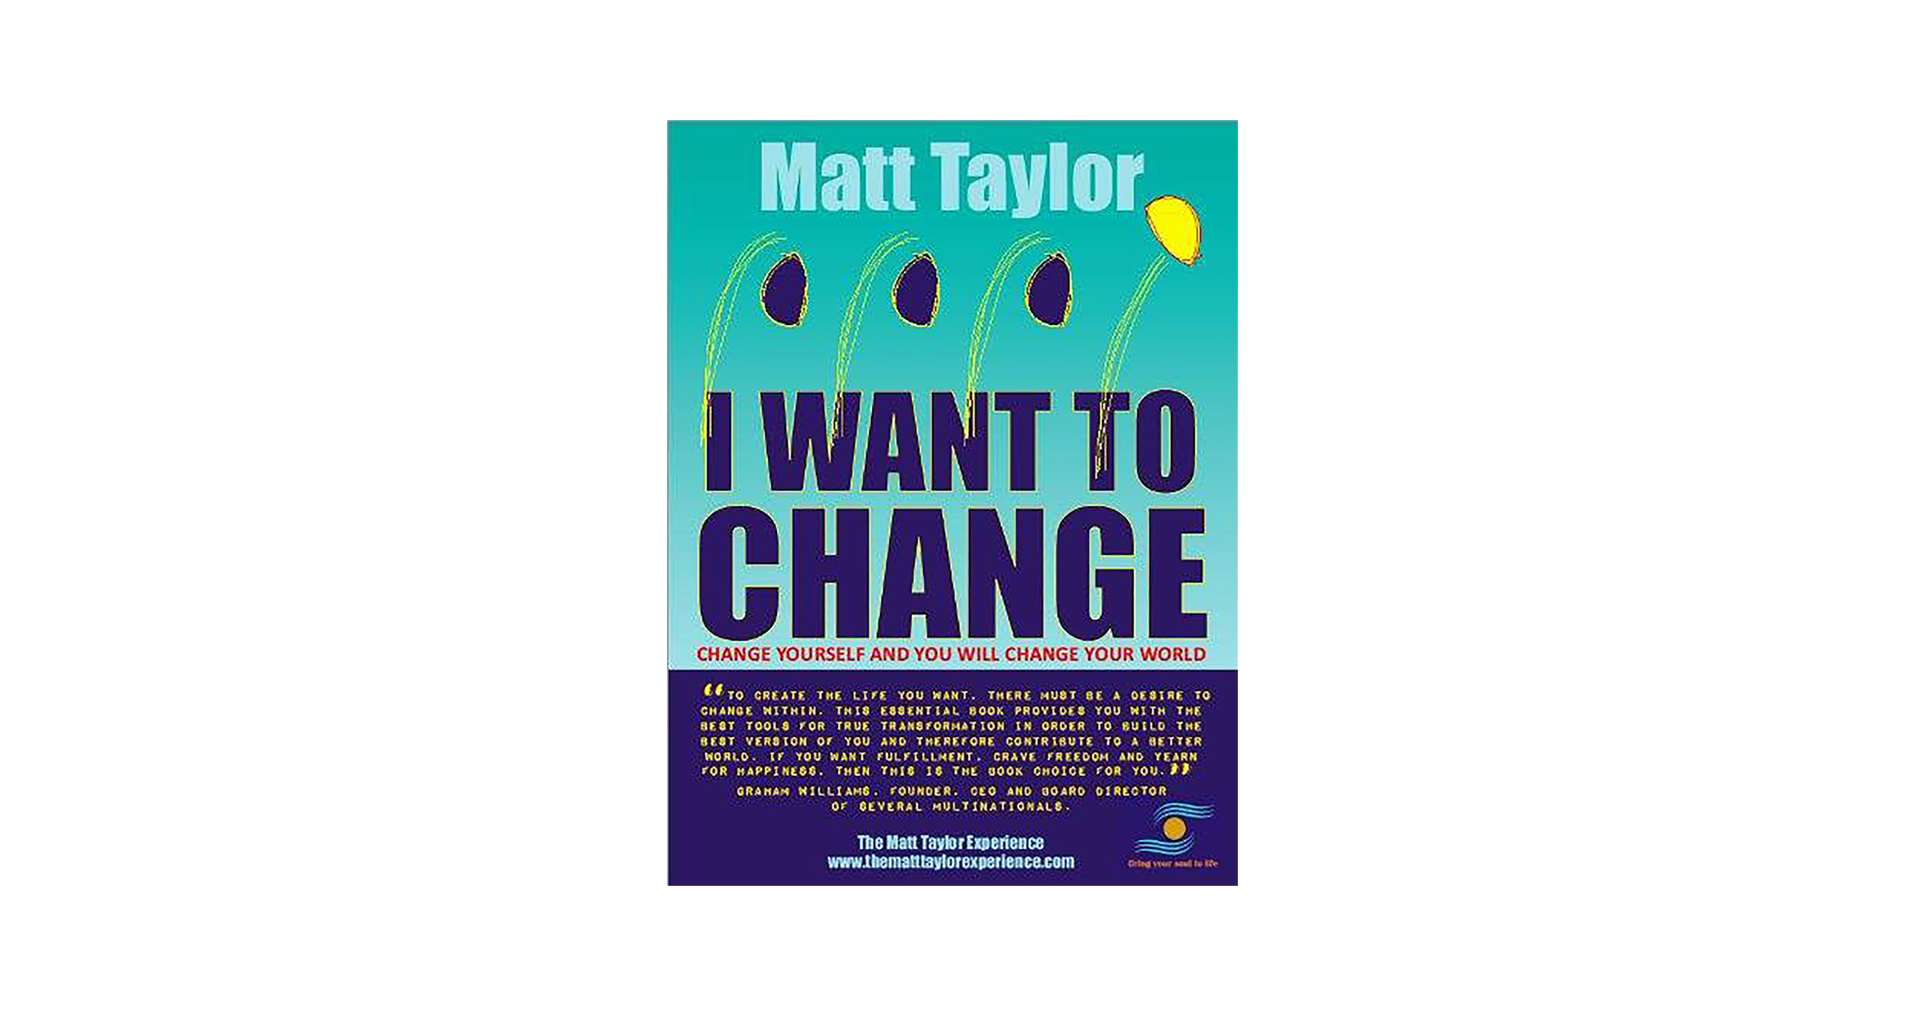 The Matt Taylor Experience | Reveal Your Purpose